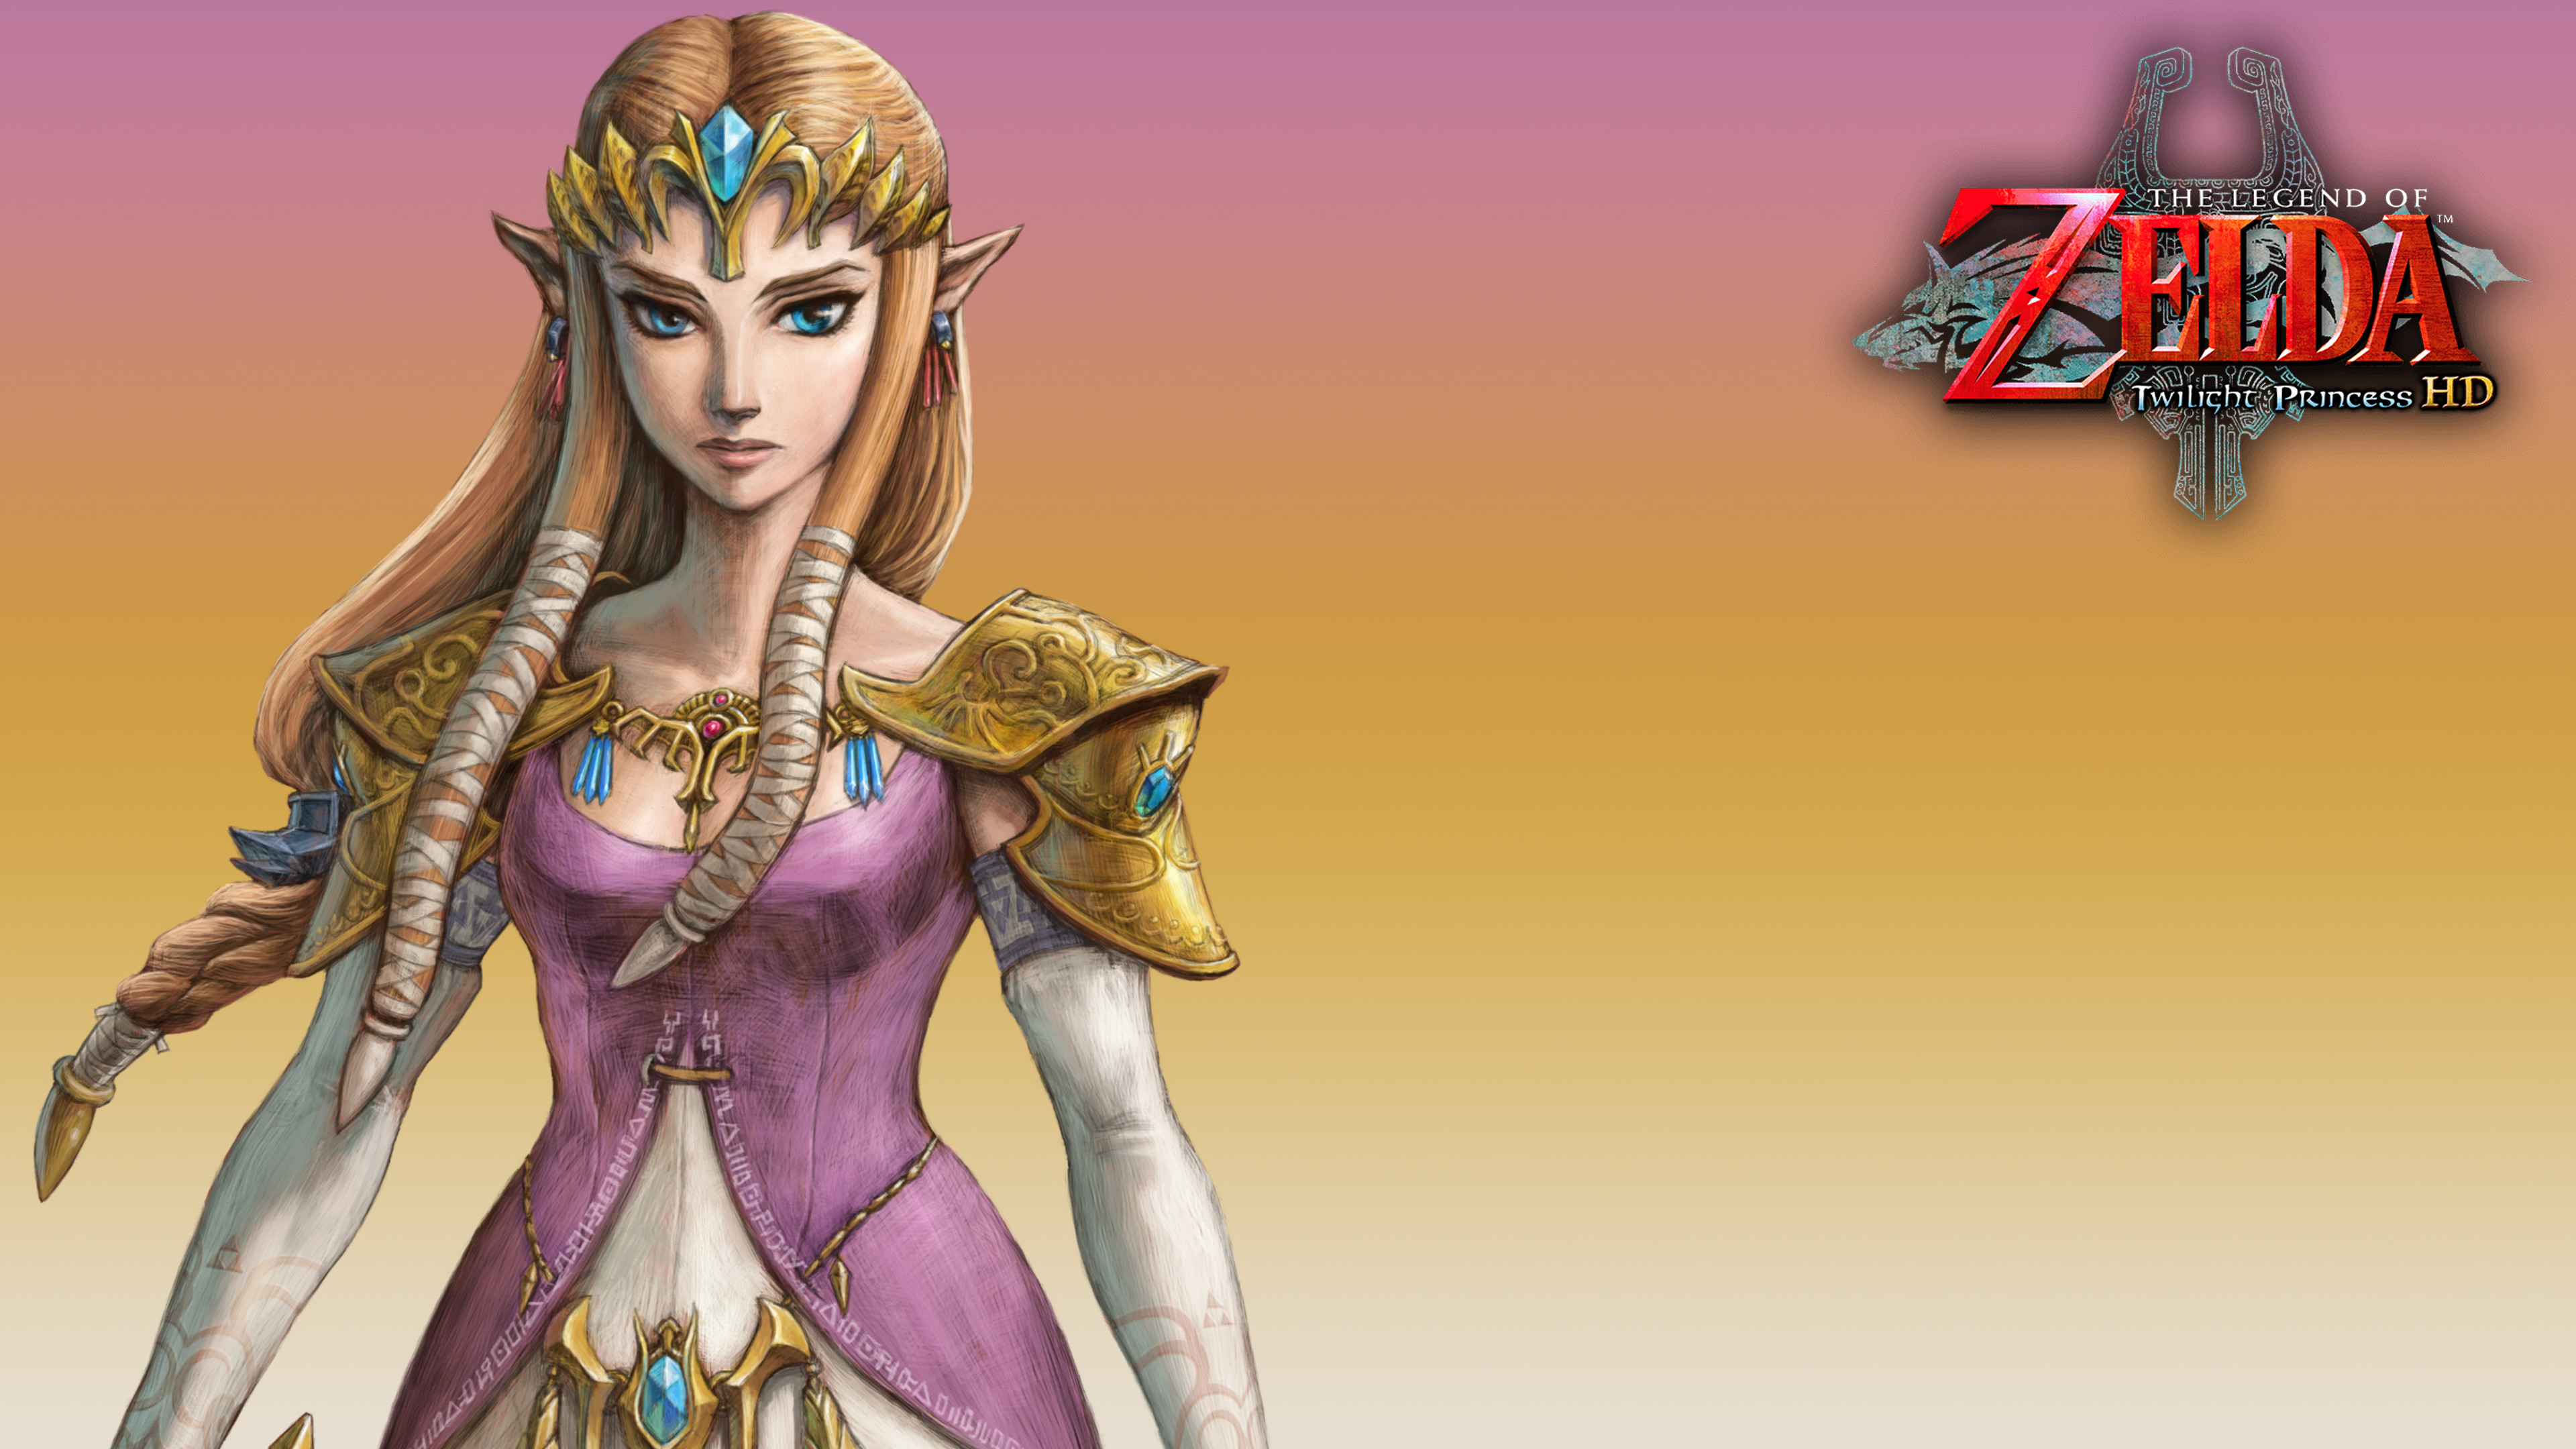 Princess Zelda Wallpapers Hd Wallpaper Collections 4kwallpaper